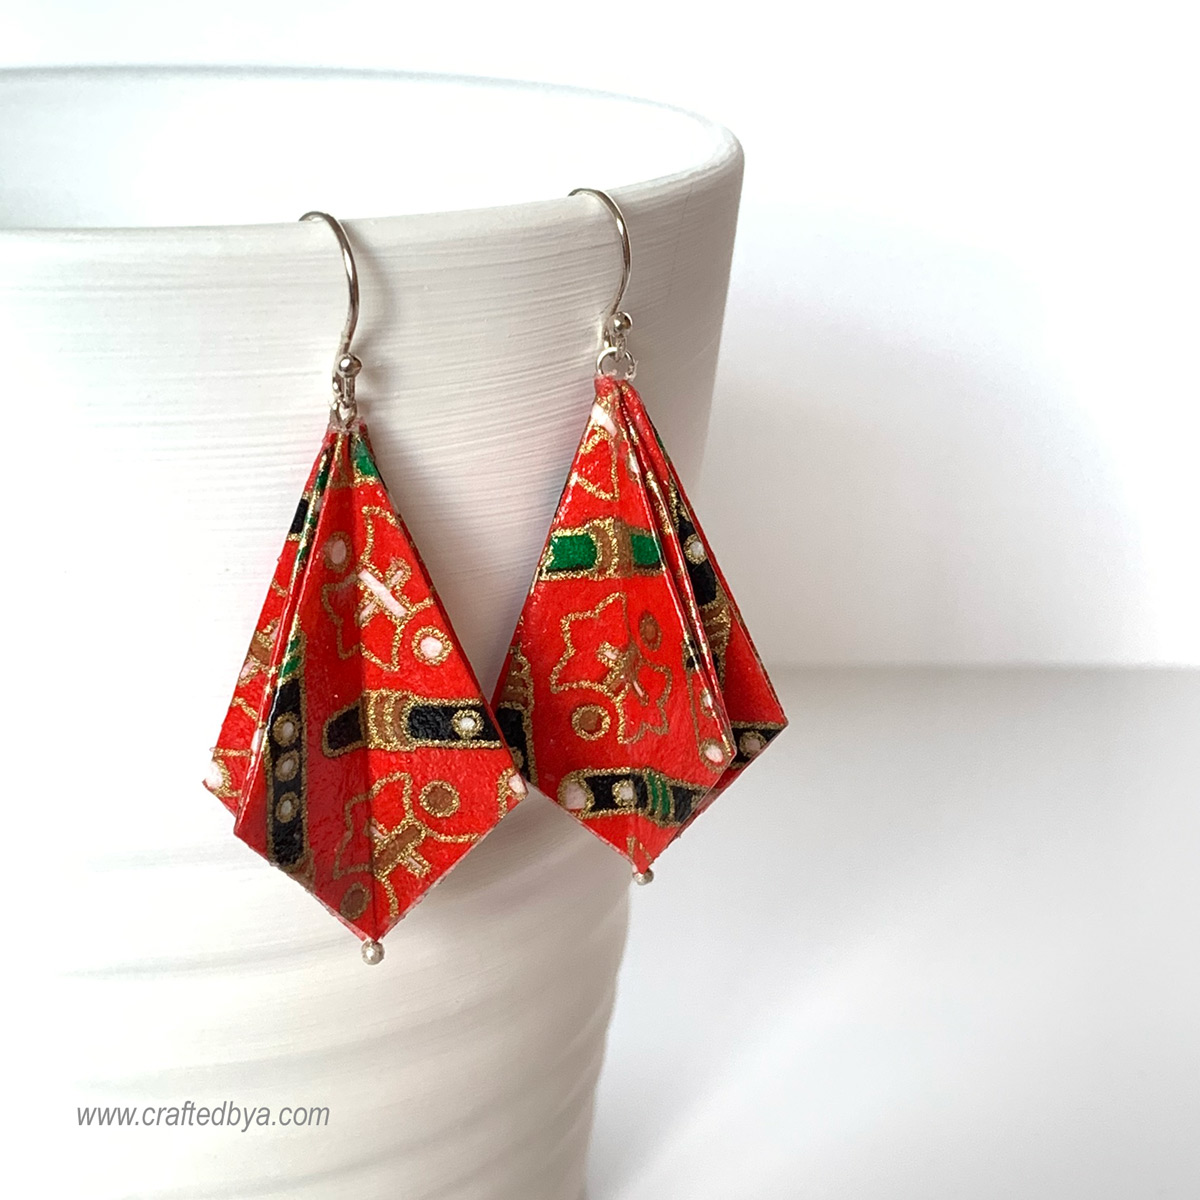 - Origami earringsMade with Japanese Yuzen handmade paper and sterling silver findingsEvery pair is hand folded and therefore uniqueCoated with a non-toxic sealant for durability and water resistance